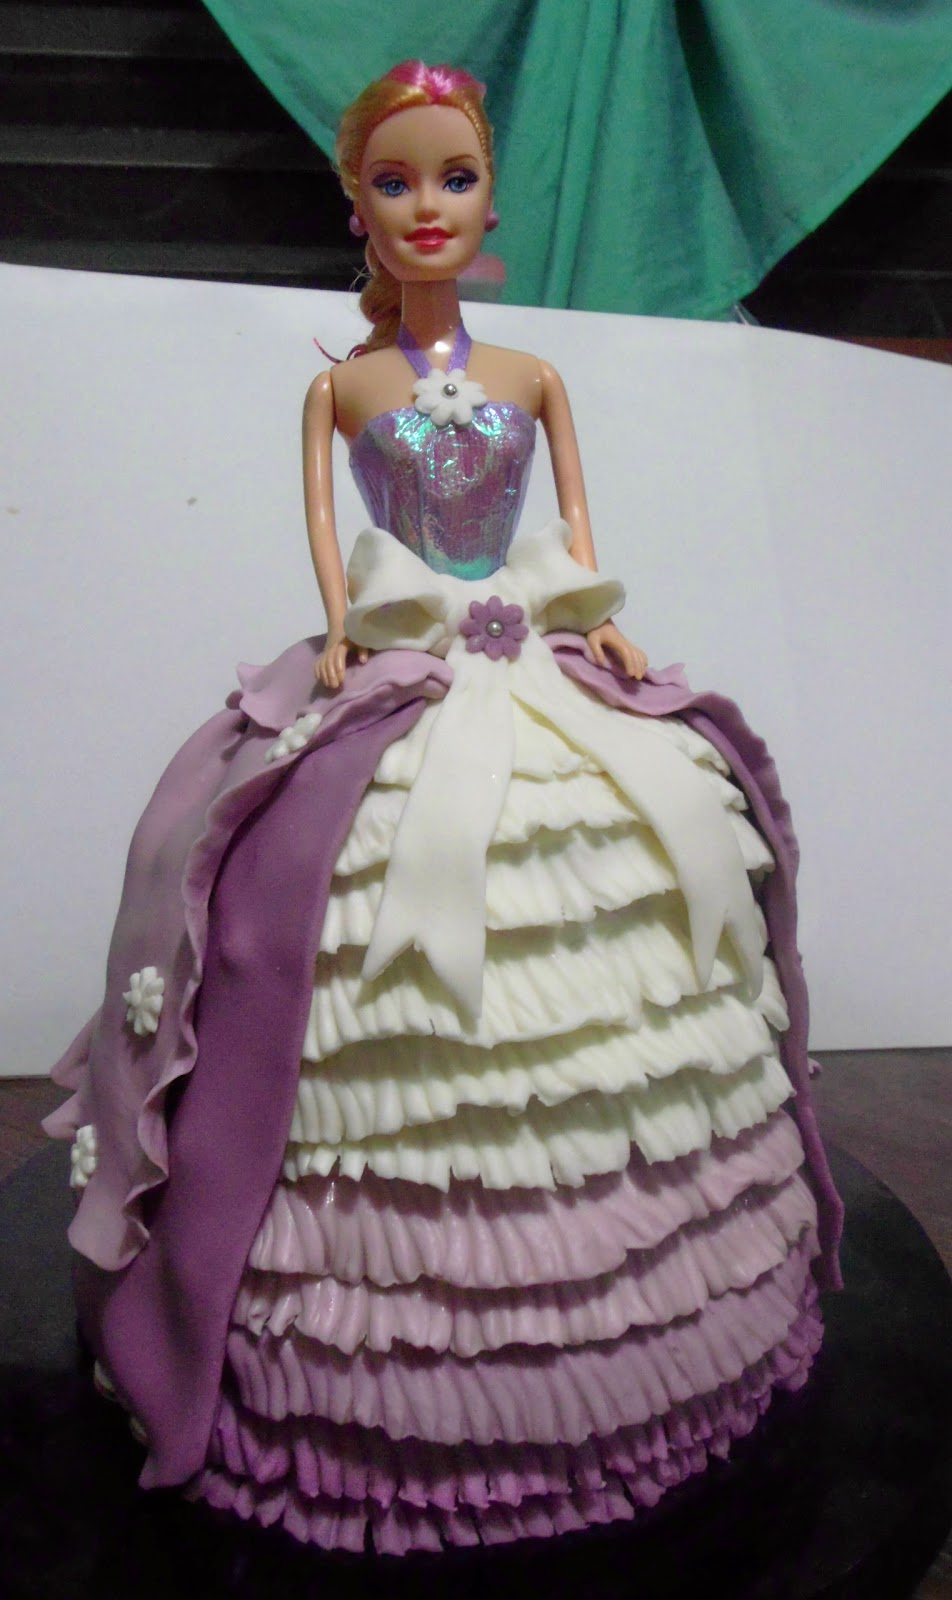 Rosie S Delights My First Ever Barbie Doll Fondant Cake